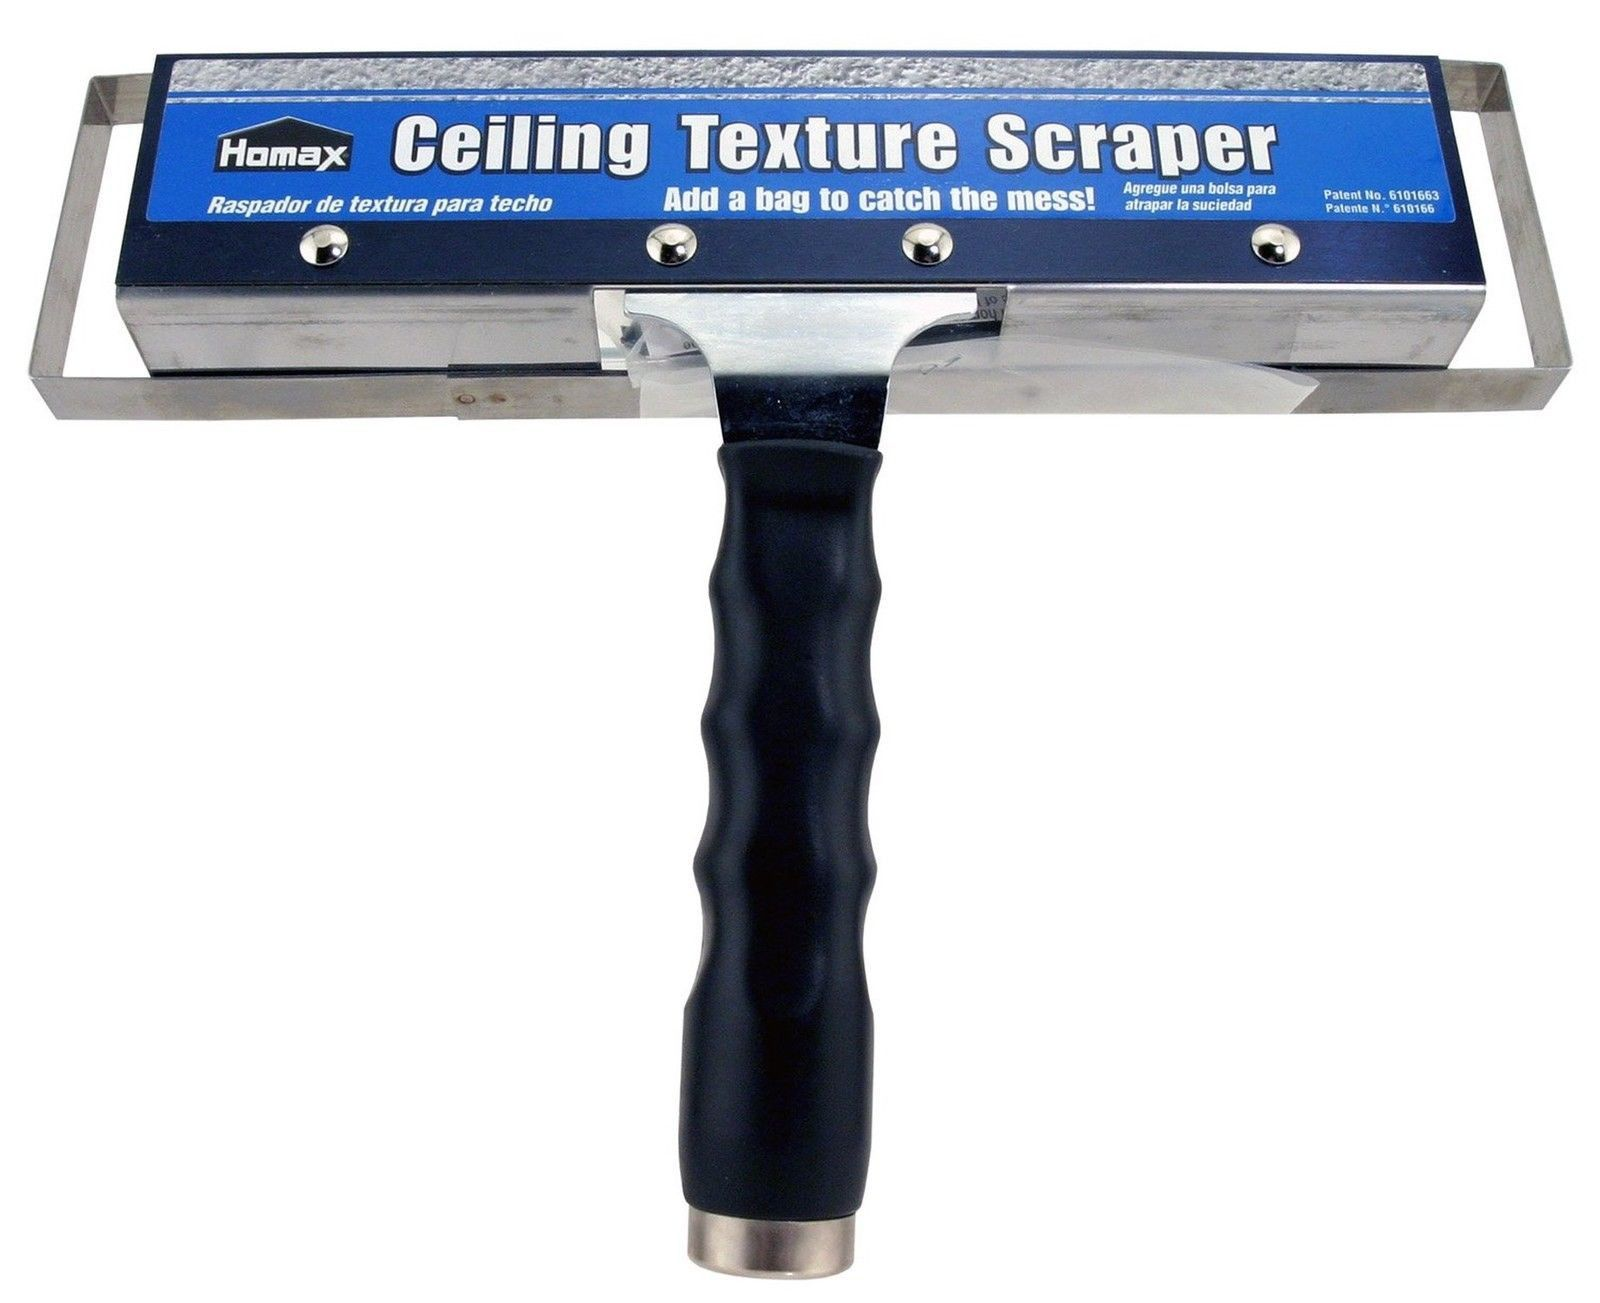 Textured Ceiling Removal Tools Taraba Home Review